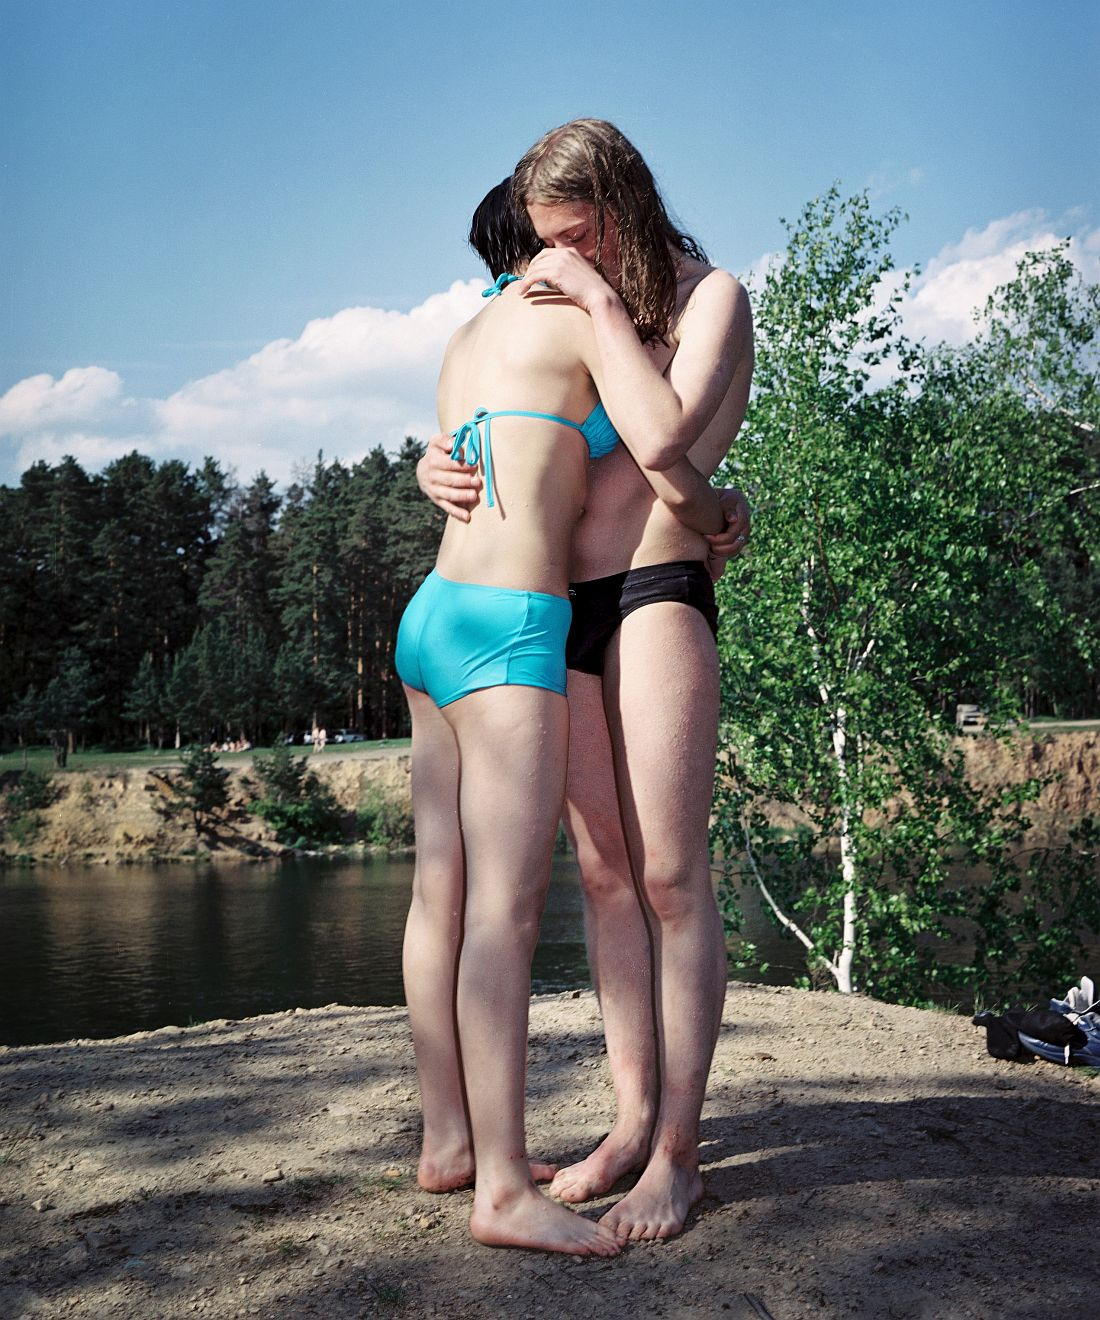 Chelyabinsk, RUSLAND, 2003 - Elfrem and Sveta near a lake in Chelyabinsk, close to the Kurchatov monument, a place where alternative people gather in Chelyabinsk.?© ROB HORNSTRA / +31 6 14365936